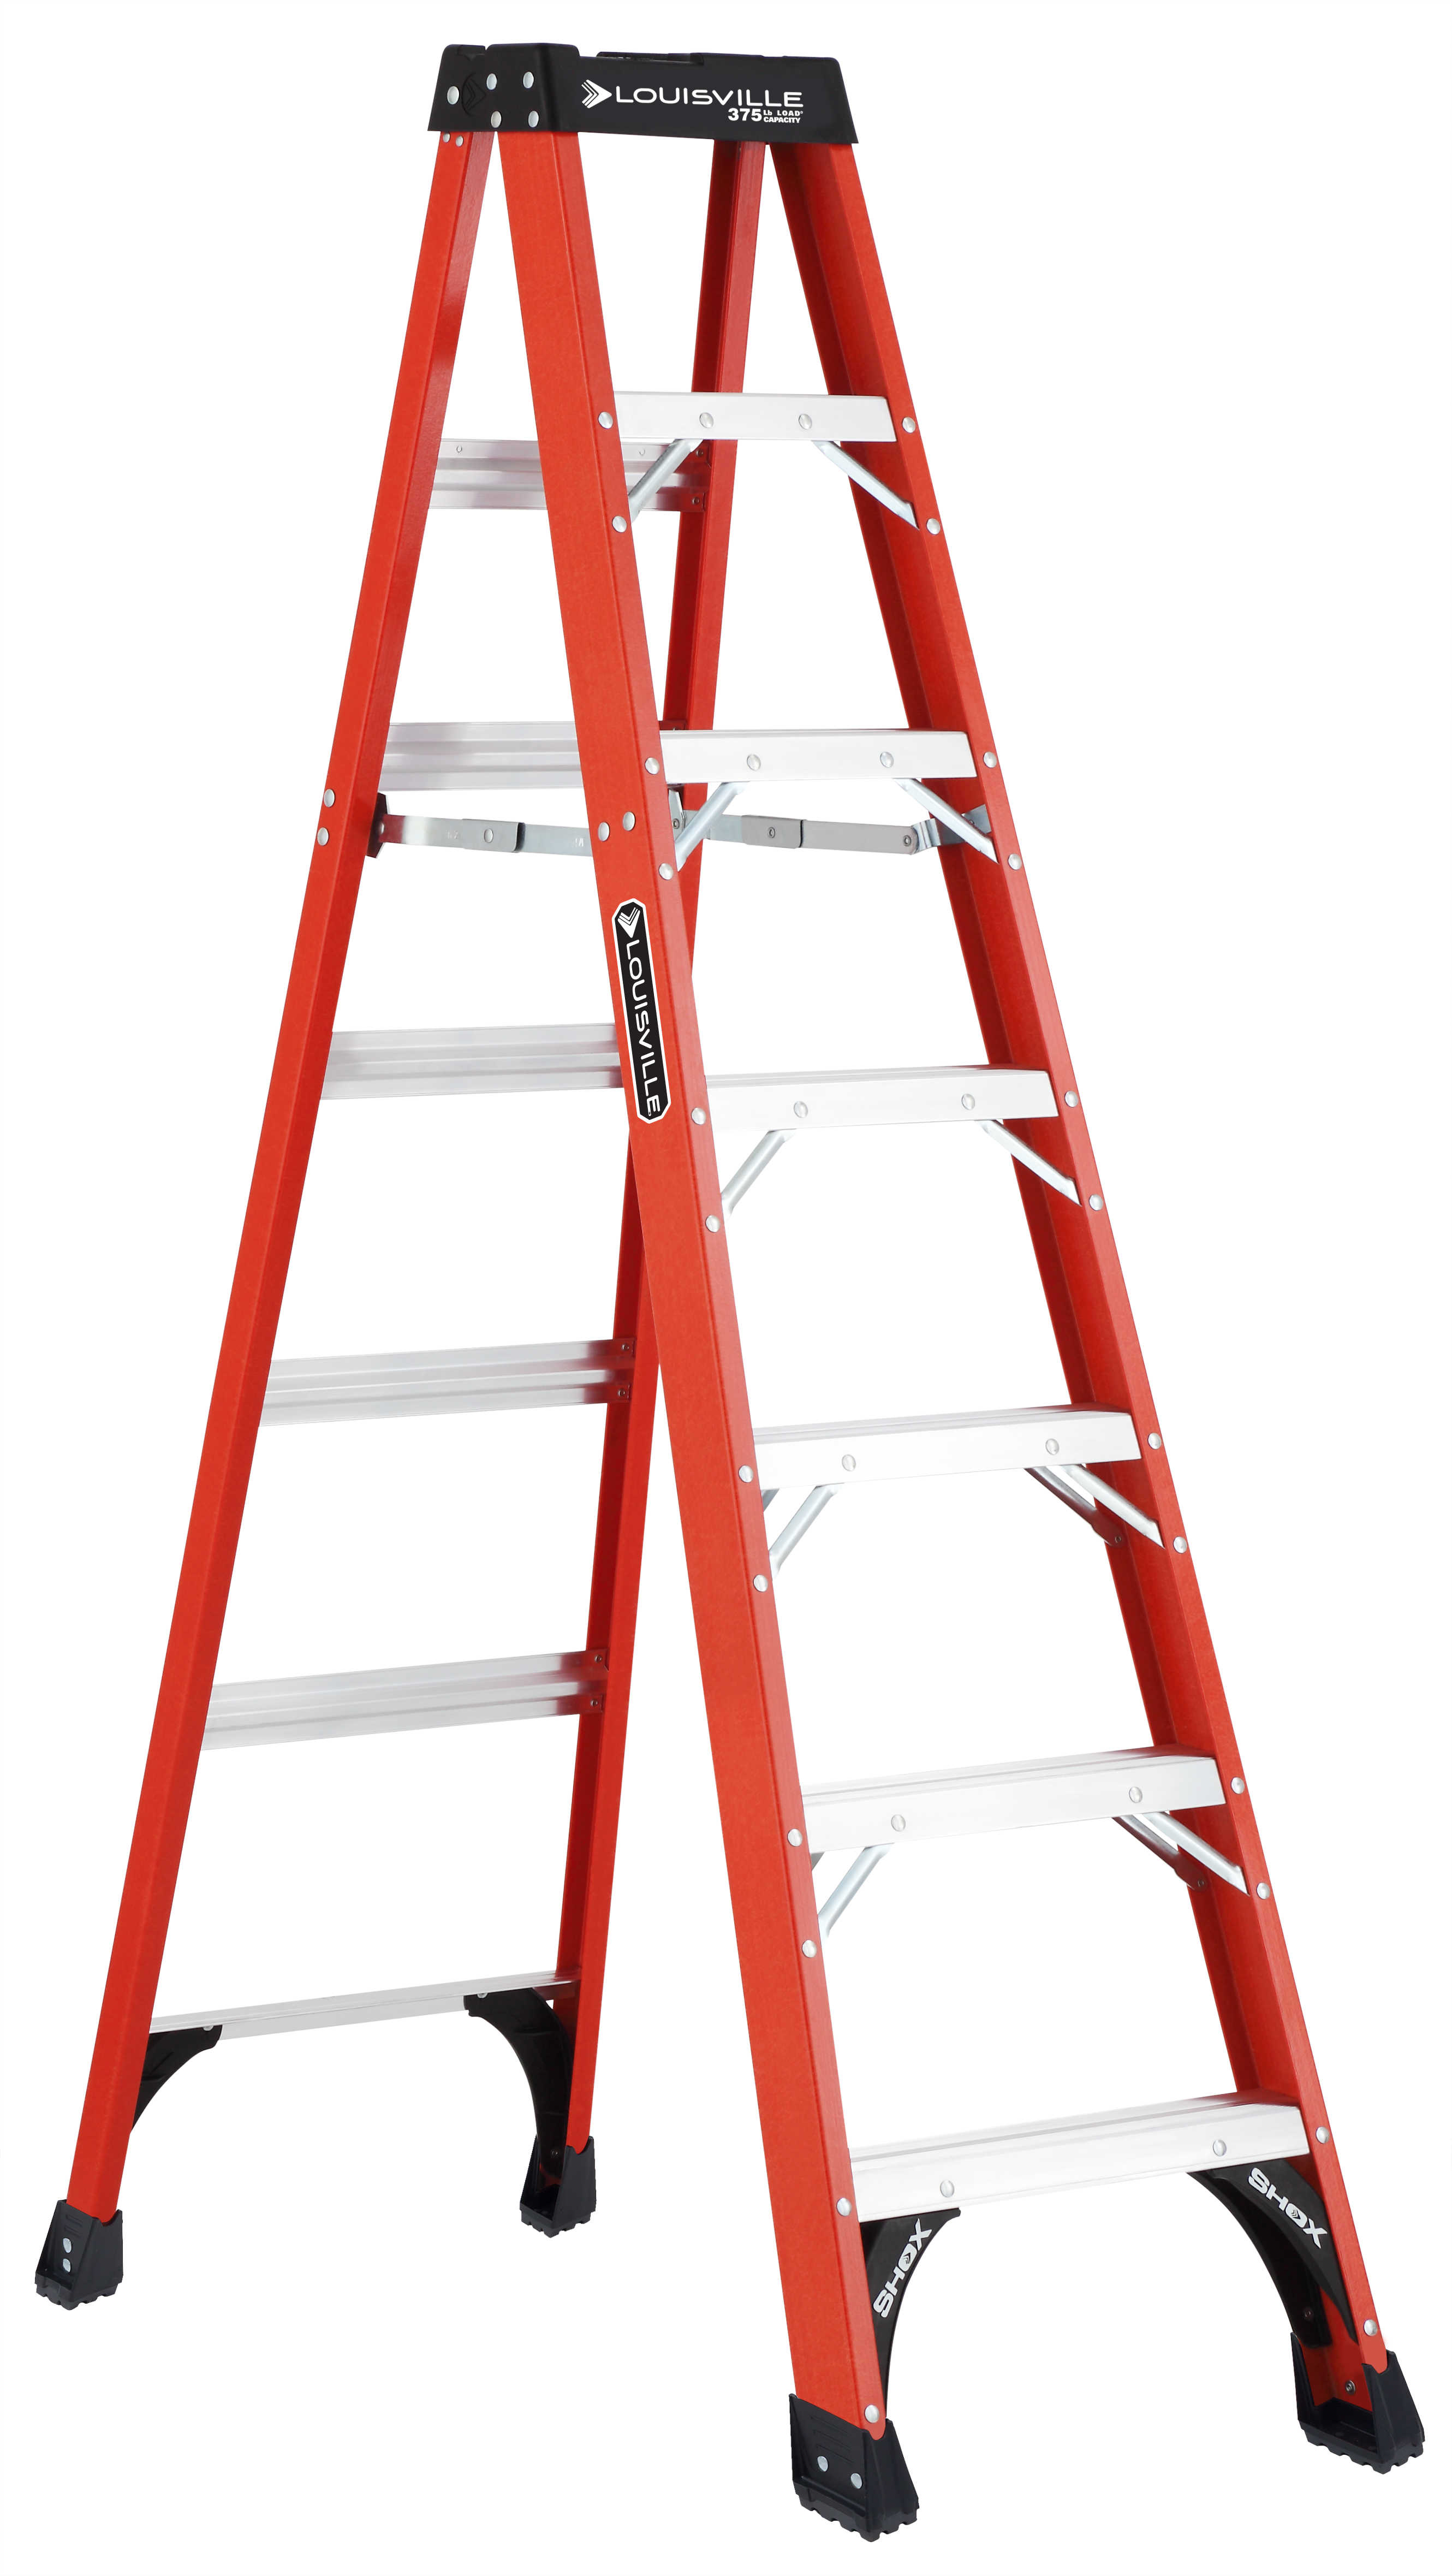 Louisville Ladder FS1407HD 7 ft. Fiberglass Heavy Duty Step Ladder, Type IAA, 375 Lbs Load Capacity